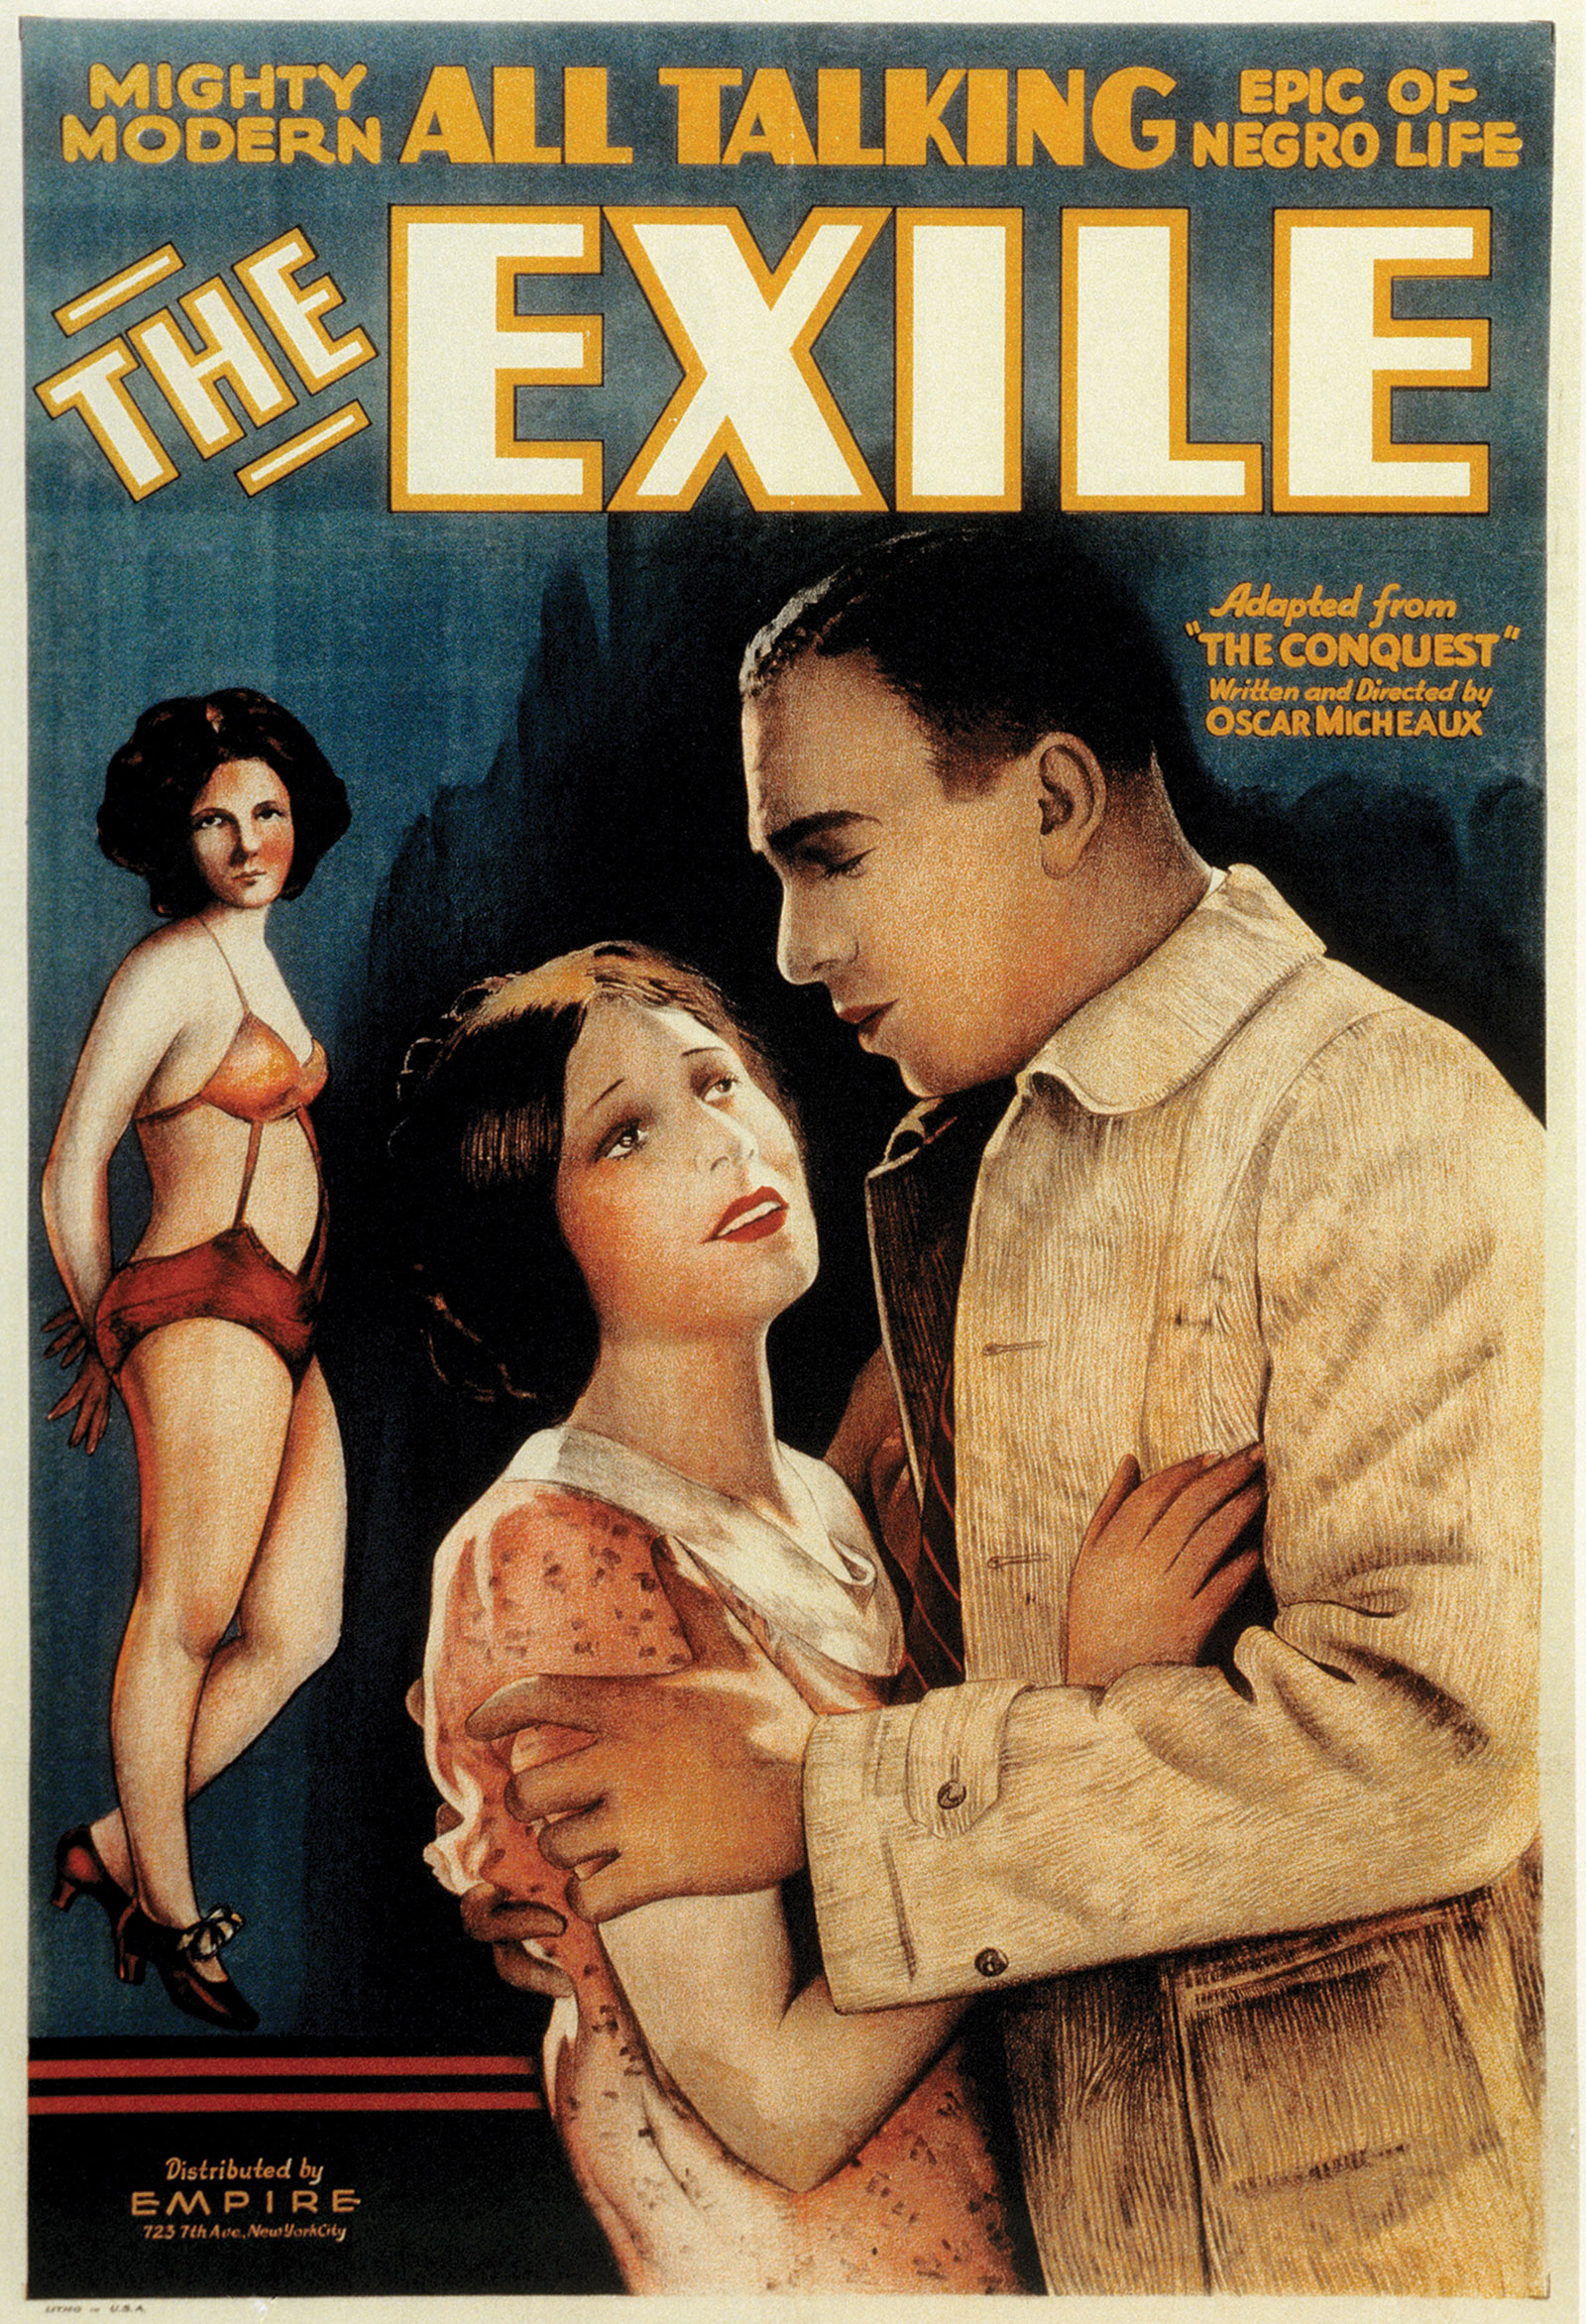 Poster for The Exile (1931), the first sound feature written and directed by Oscar Micheaux, based on his novel The Conquest: The Story of a Negro Pioneer